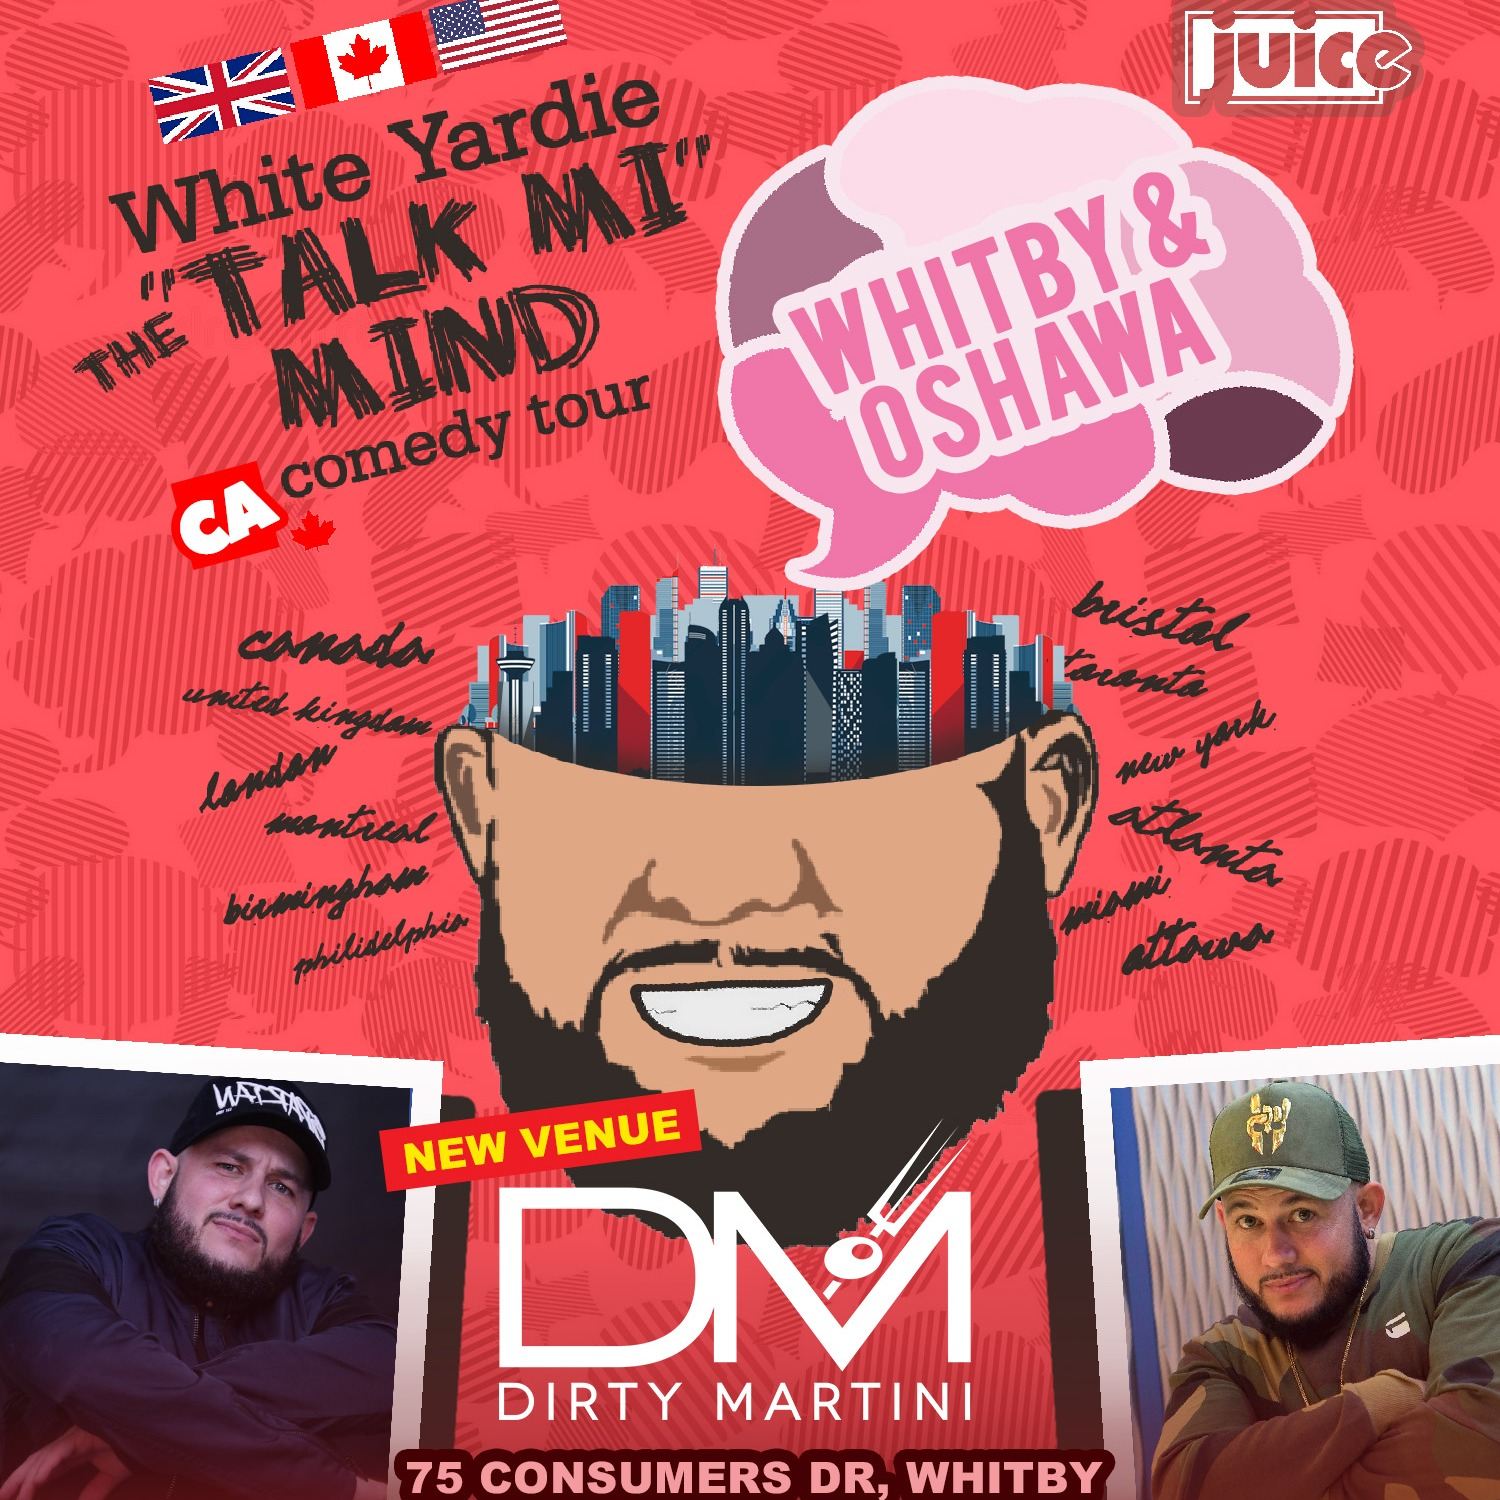 WHITBY / OSHAWA - JUICE Comedy presents WHITE YARDIE'S 'Talk Mi Mind'